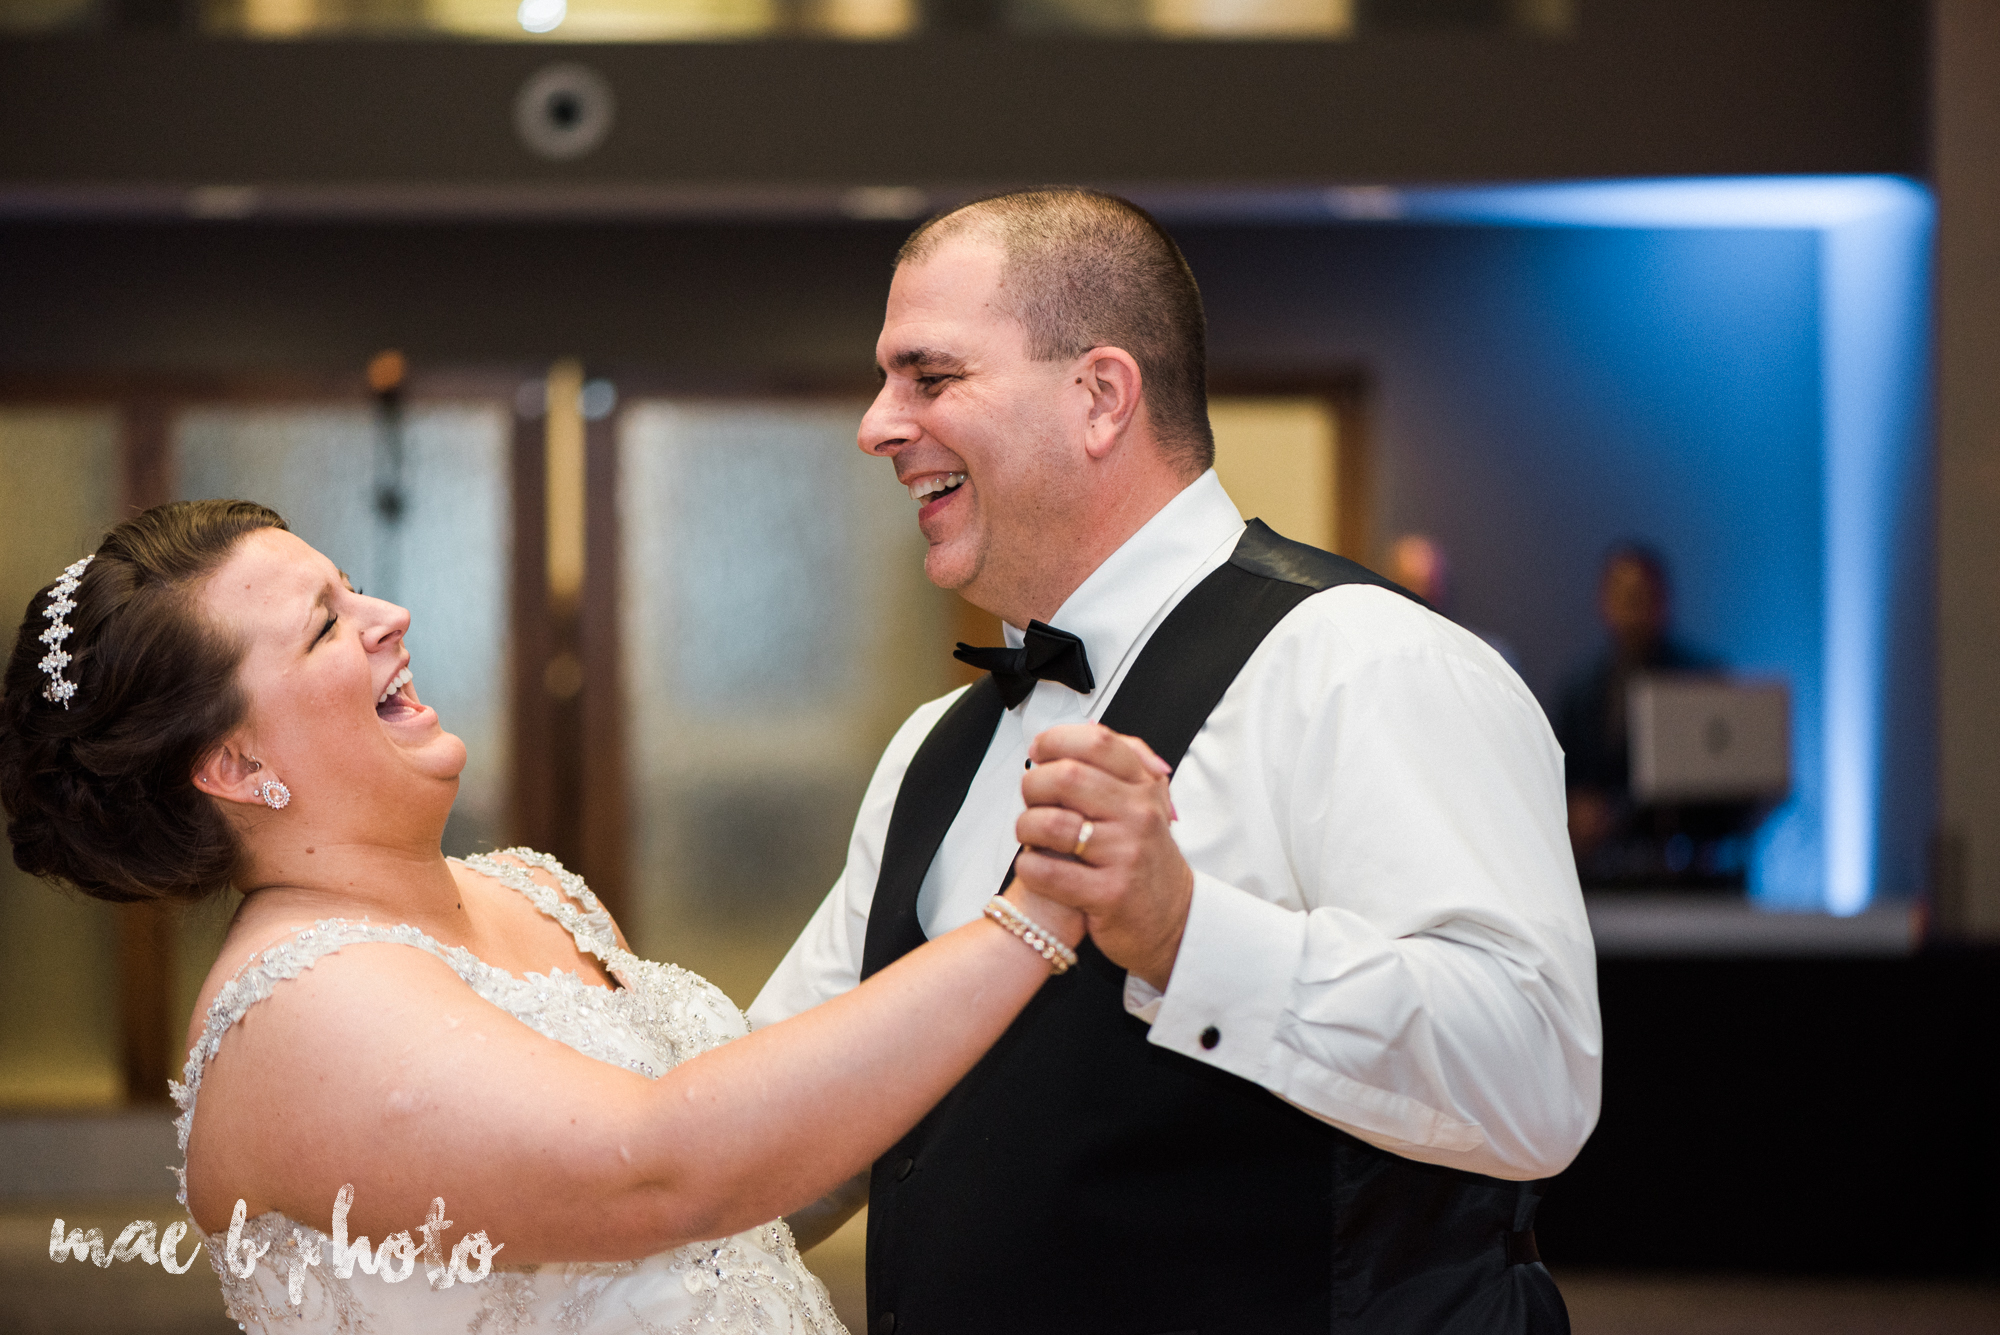 kaylynn & matt's fall zoo wedding at the cleveland metroparks zoo in cleveland ohio photographed by mae b photo-140.jpg